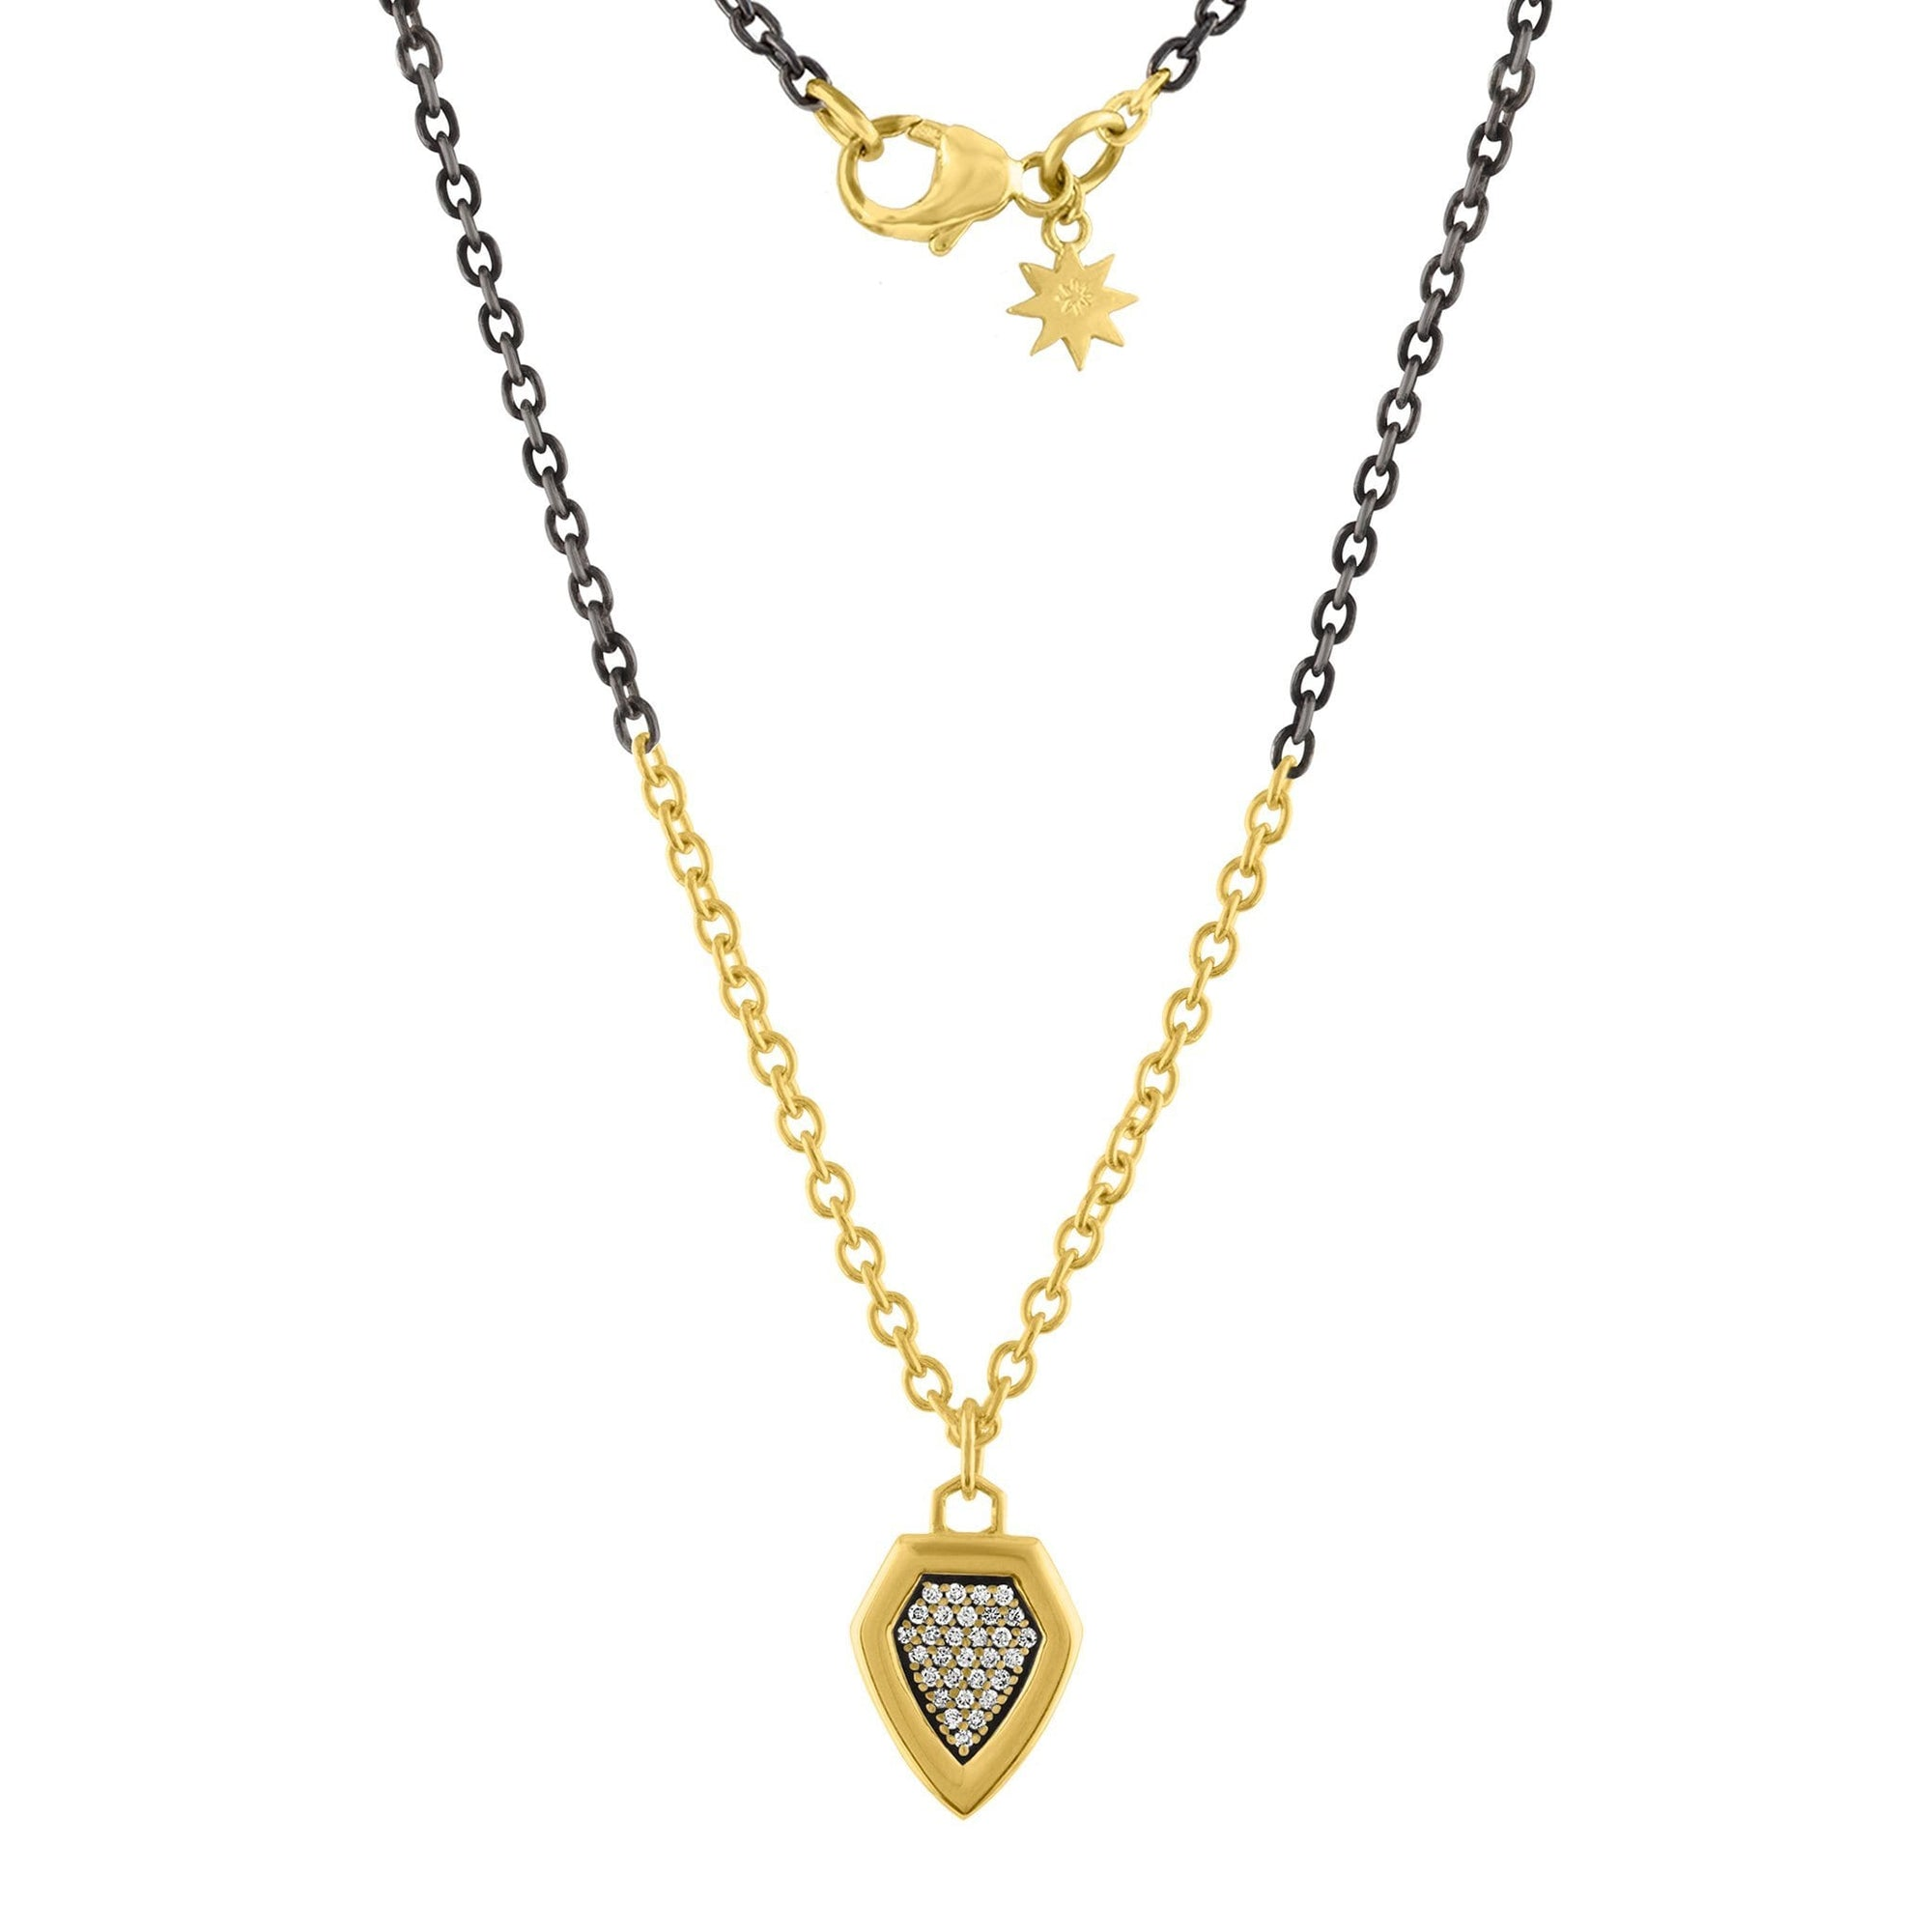 Arch Mini Shield Necklace: 14k Gold, Oxidized Silver, Diamonds